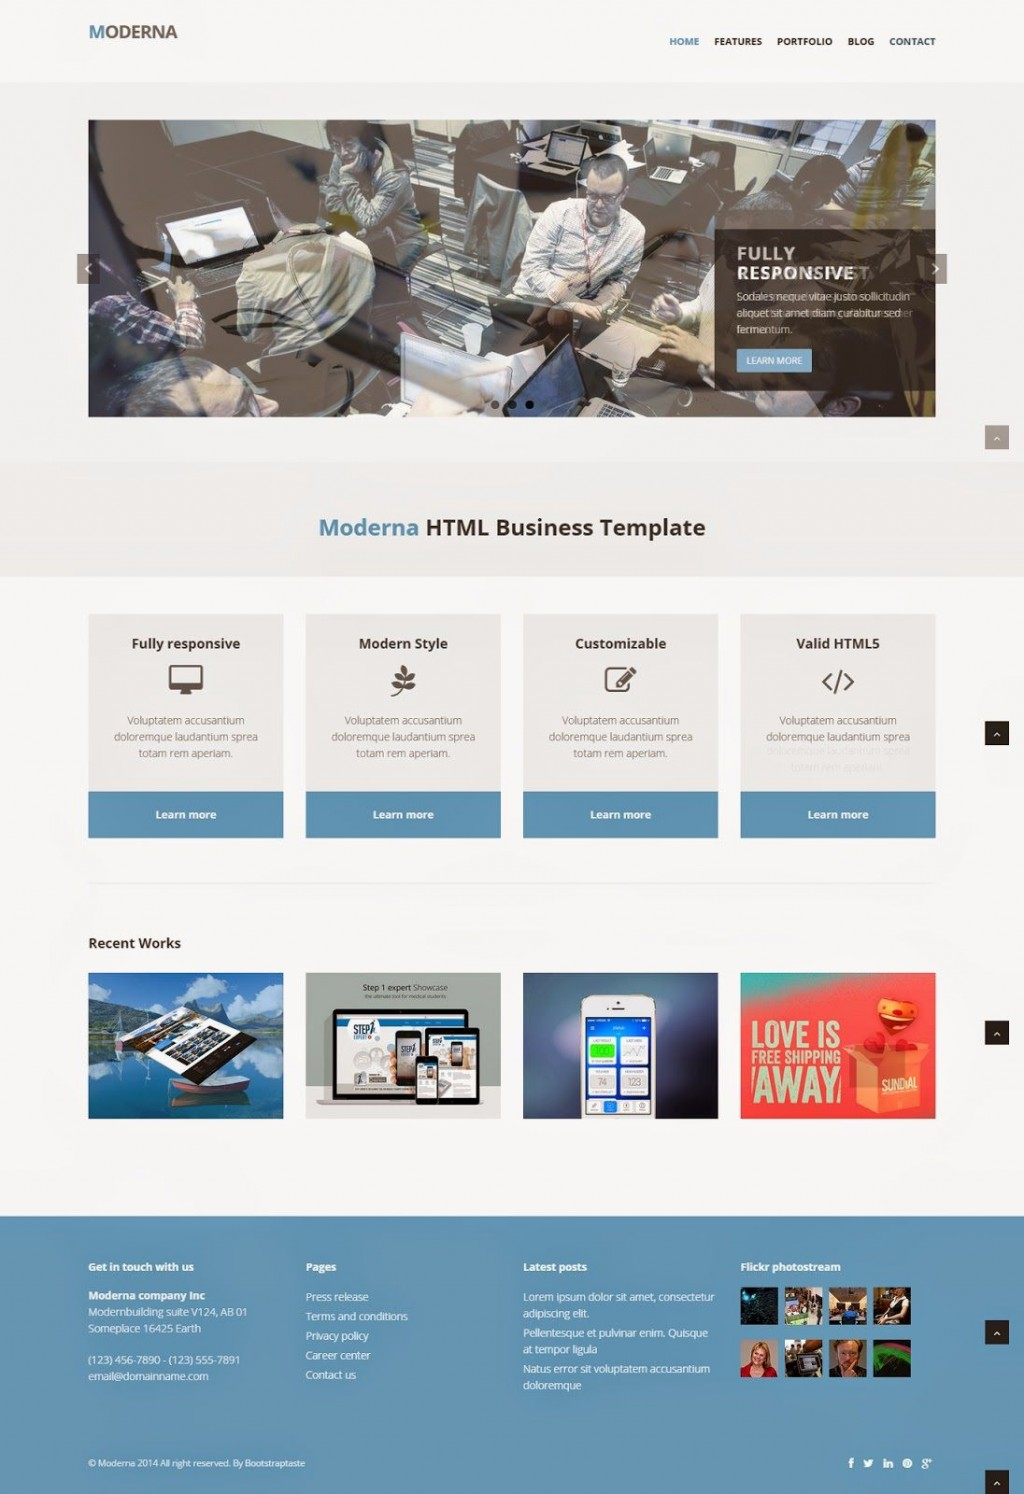 009 Frightening Free Website Template Download Html And Cs Jquery For Ecommerce Concept Large